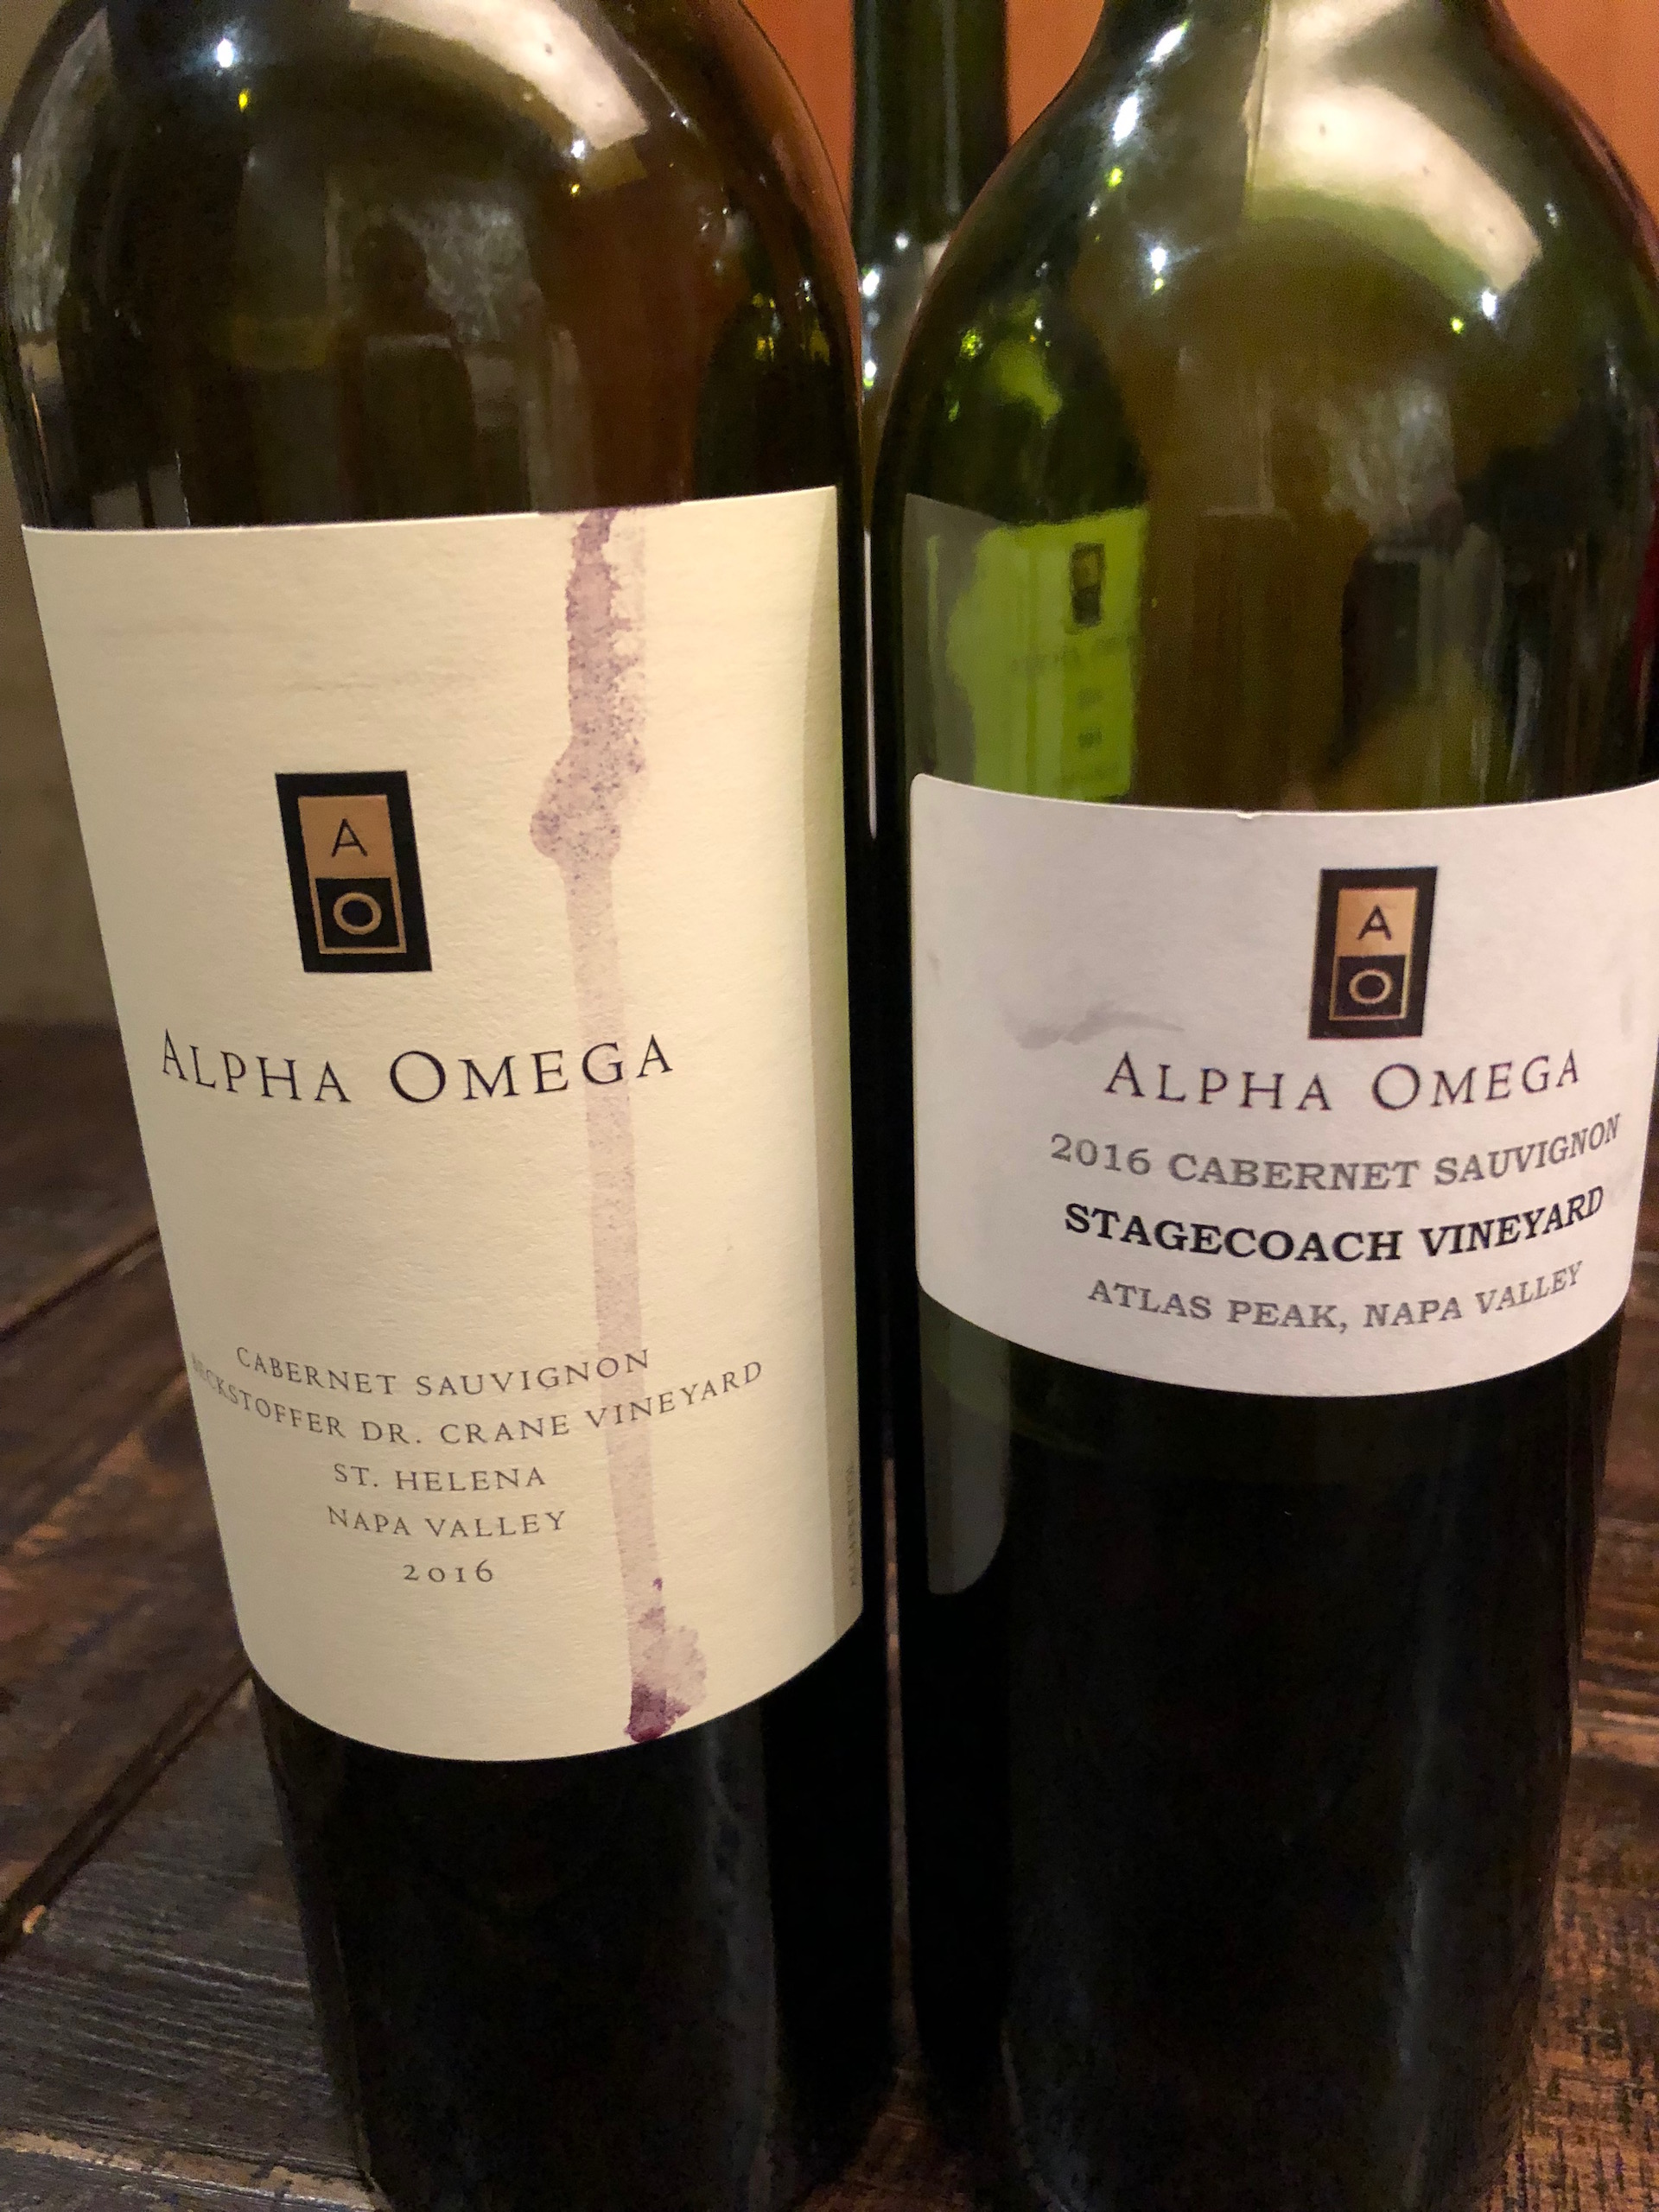 Two of the Napa Valley's most iconic vineyards, Beckstoffer Dr. Crane and Stagecoach, are sources for Alpha Omega Cabernet Sauvignon